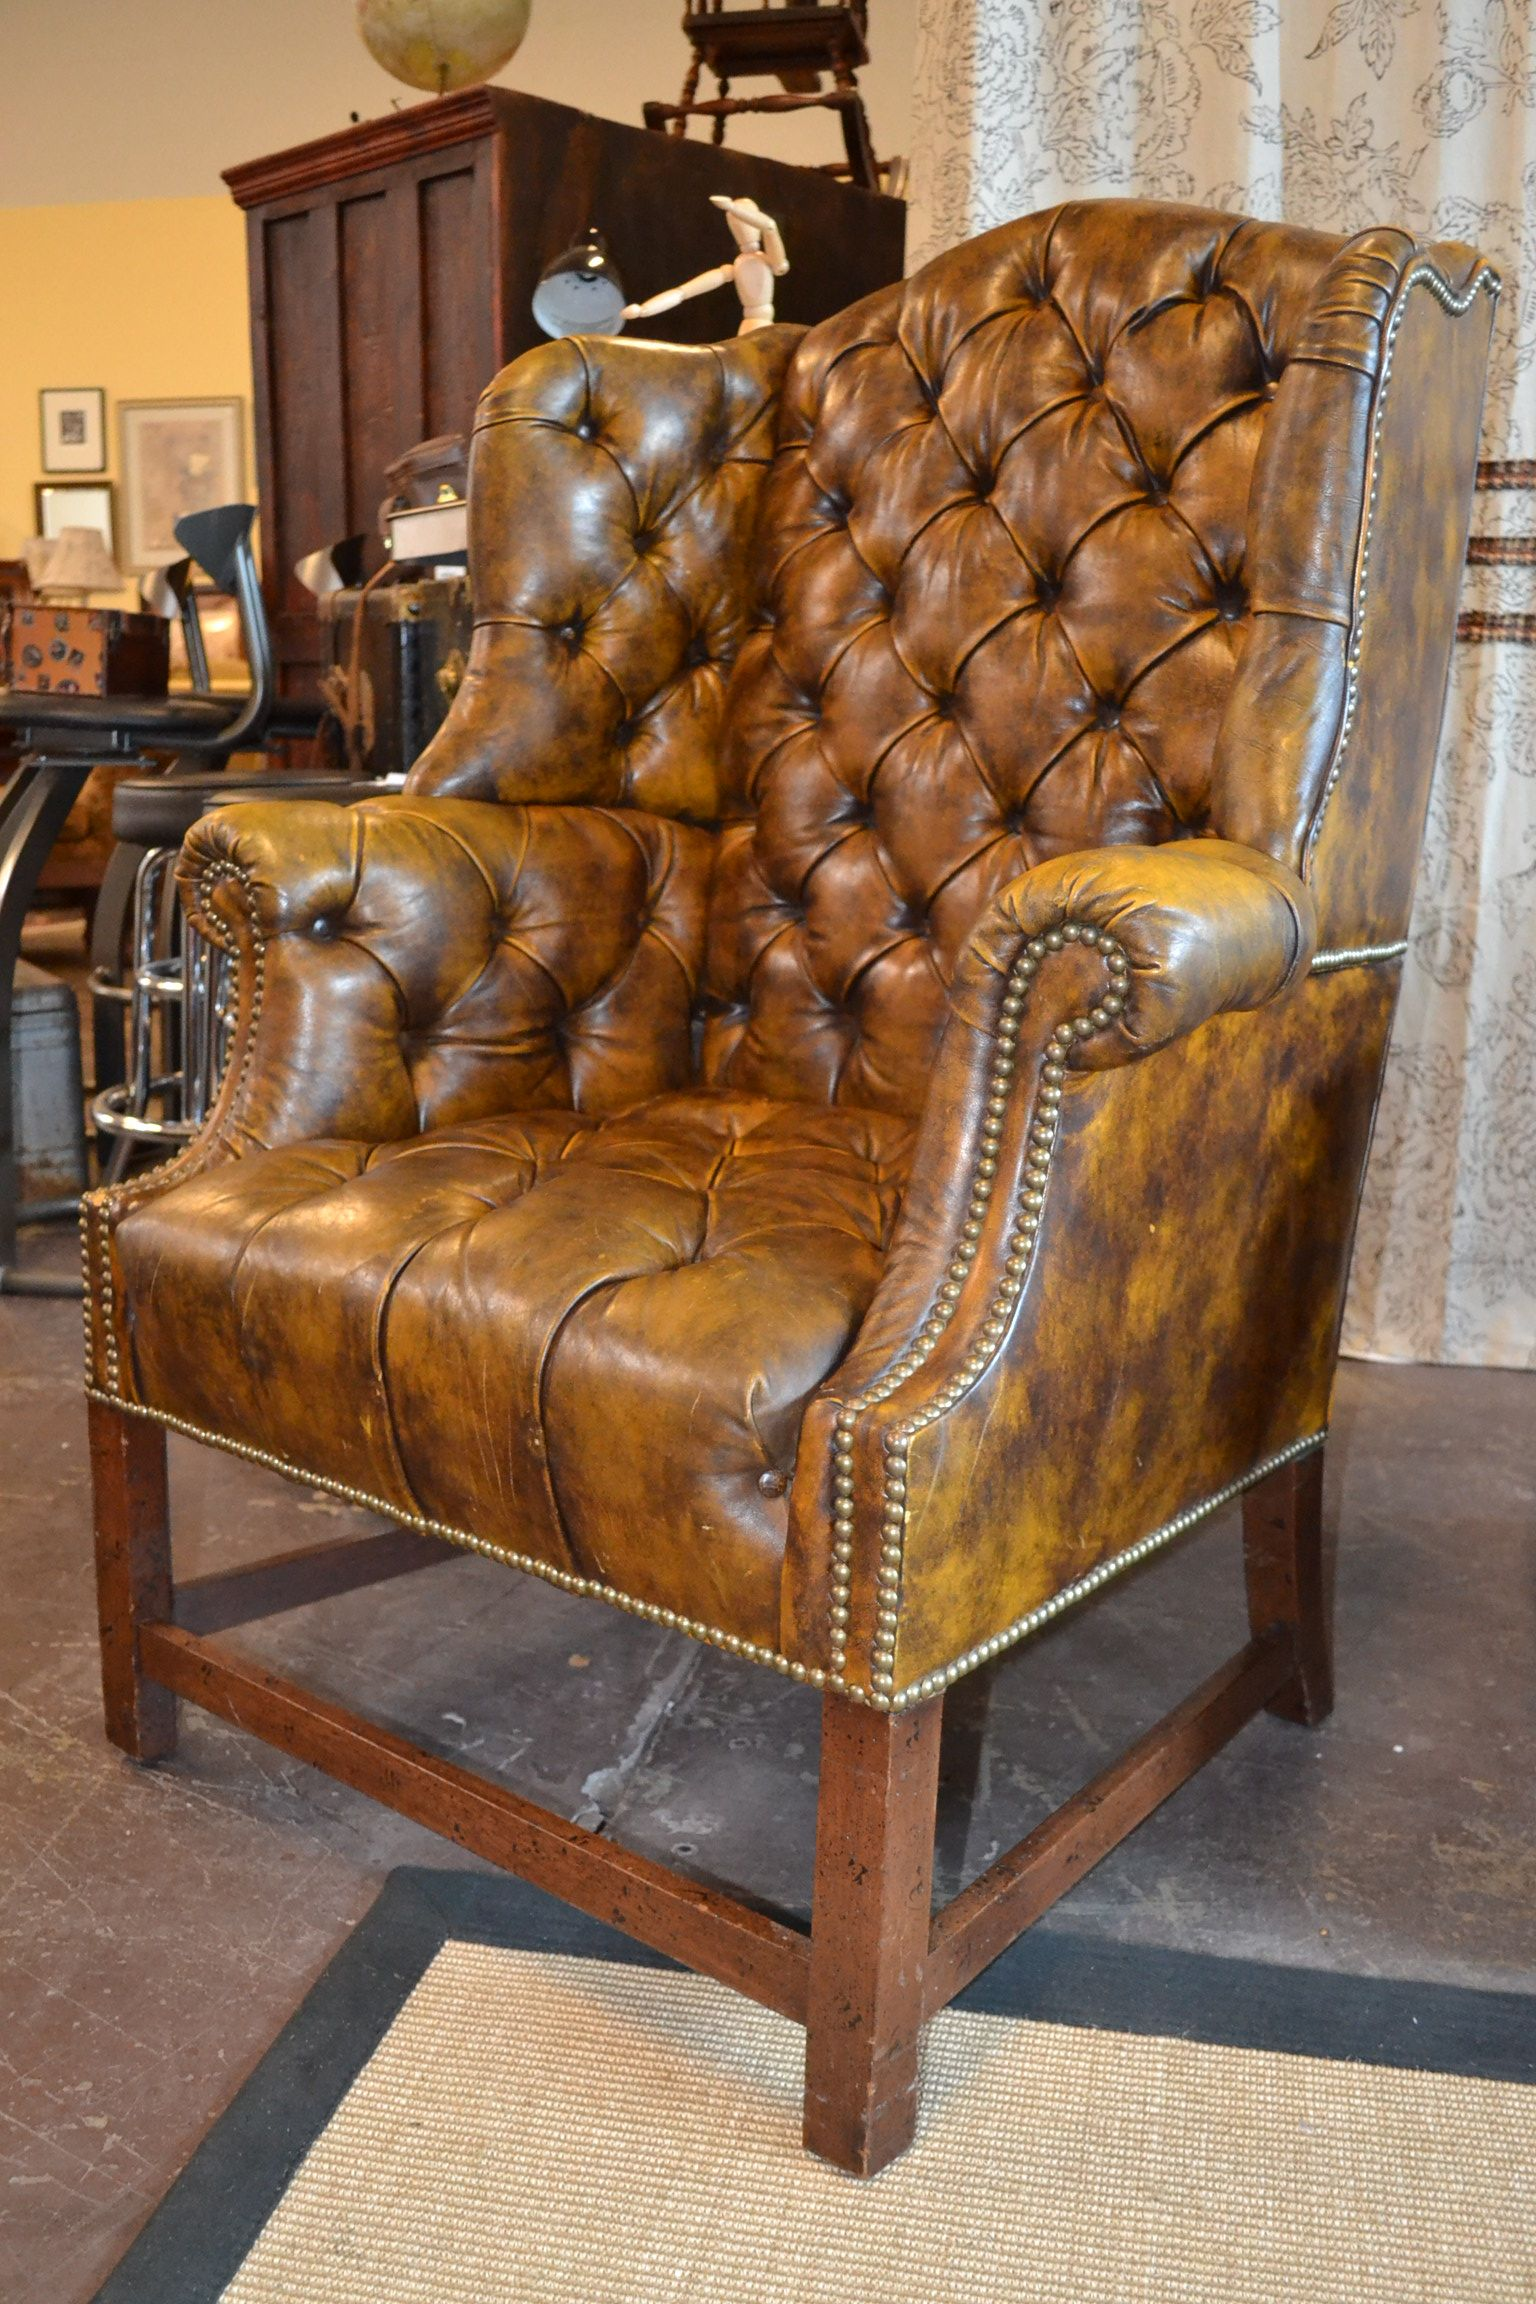 Peachy Mottled Leather Hancock Moore Tufted Library Wing Chair Spiritservingveterans Wood Chair Design Ideas Spiritservingveteransorg